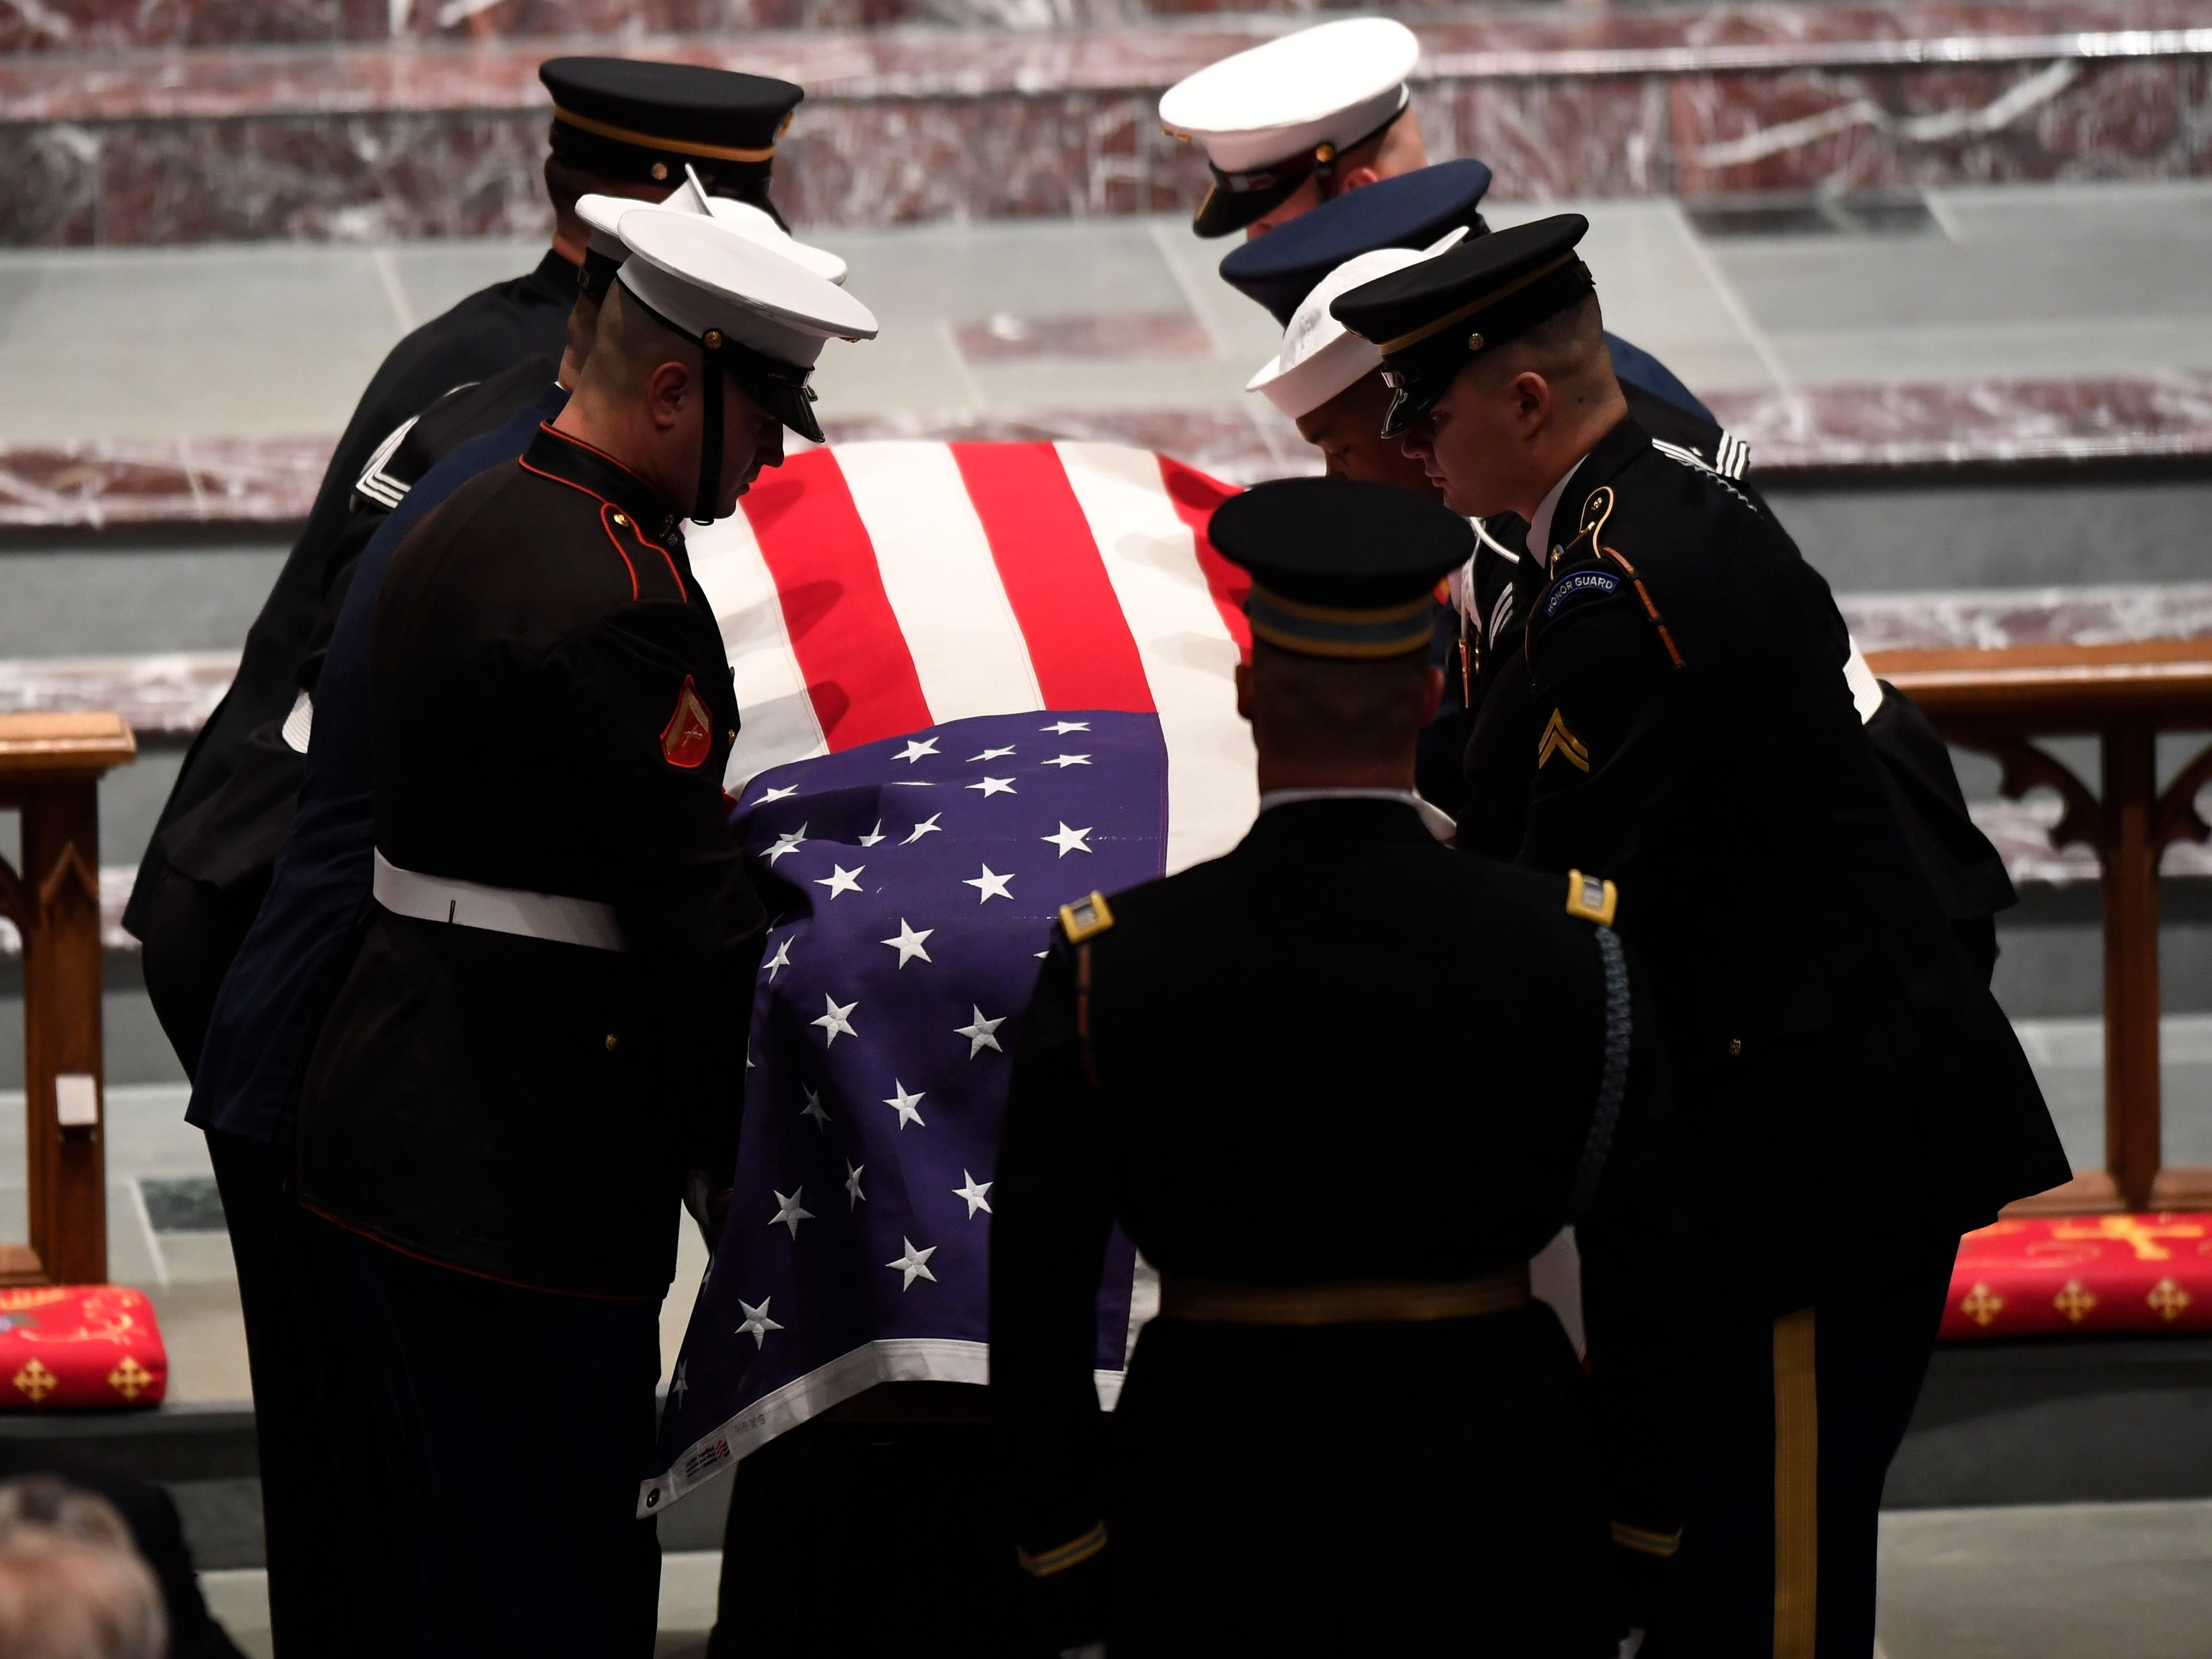 The flag-draped casket of former President George H.W. Bush is carried by a joint services military honor guard and placed in St. Martin's Episcopal Church Thursday, Dec. 6, 2018, in Houston.